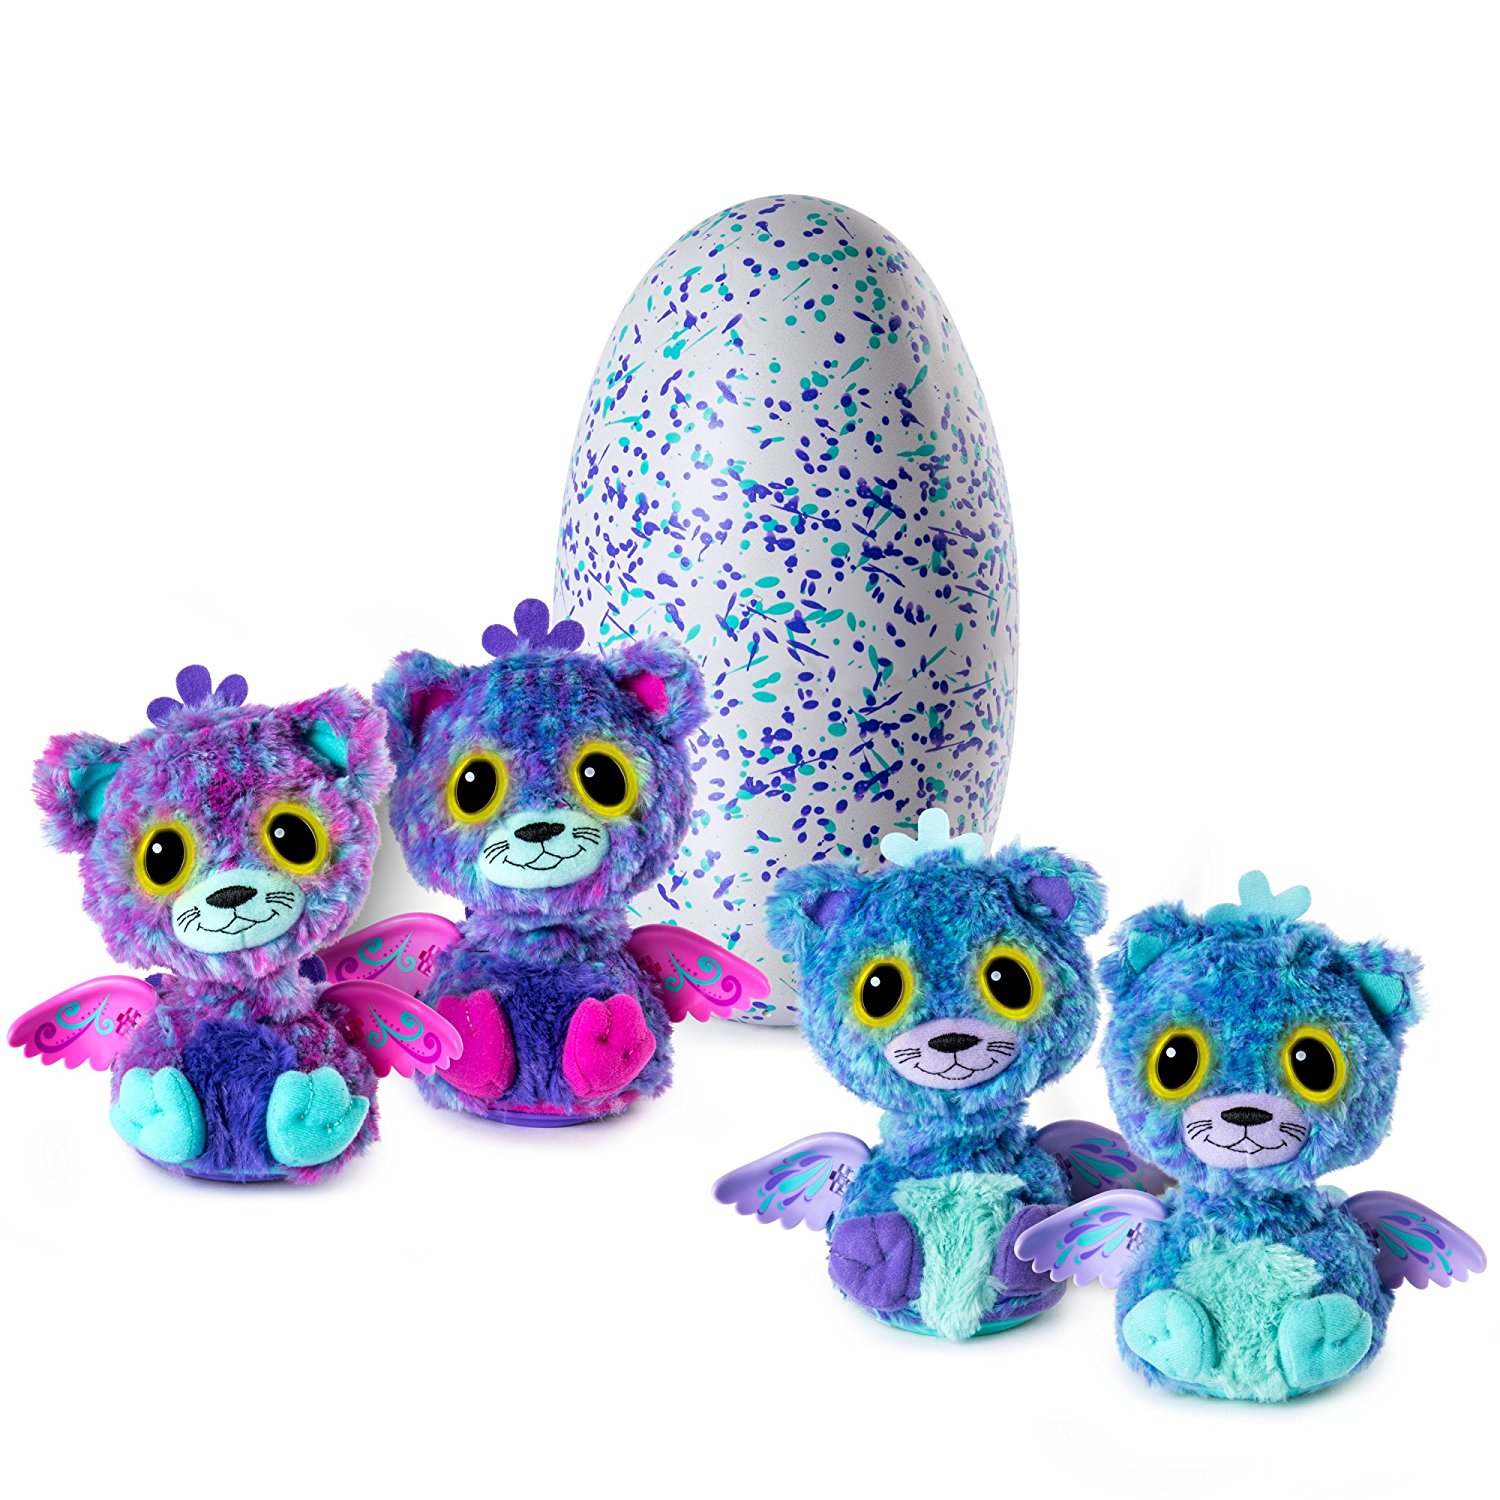 Hatchimals Surprise - Peacat (Hatching Egg with Surprise Twin Interactive Hatchimal Creatures by Spin Master)